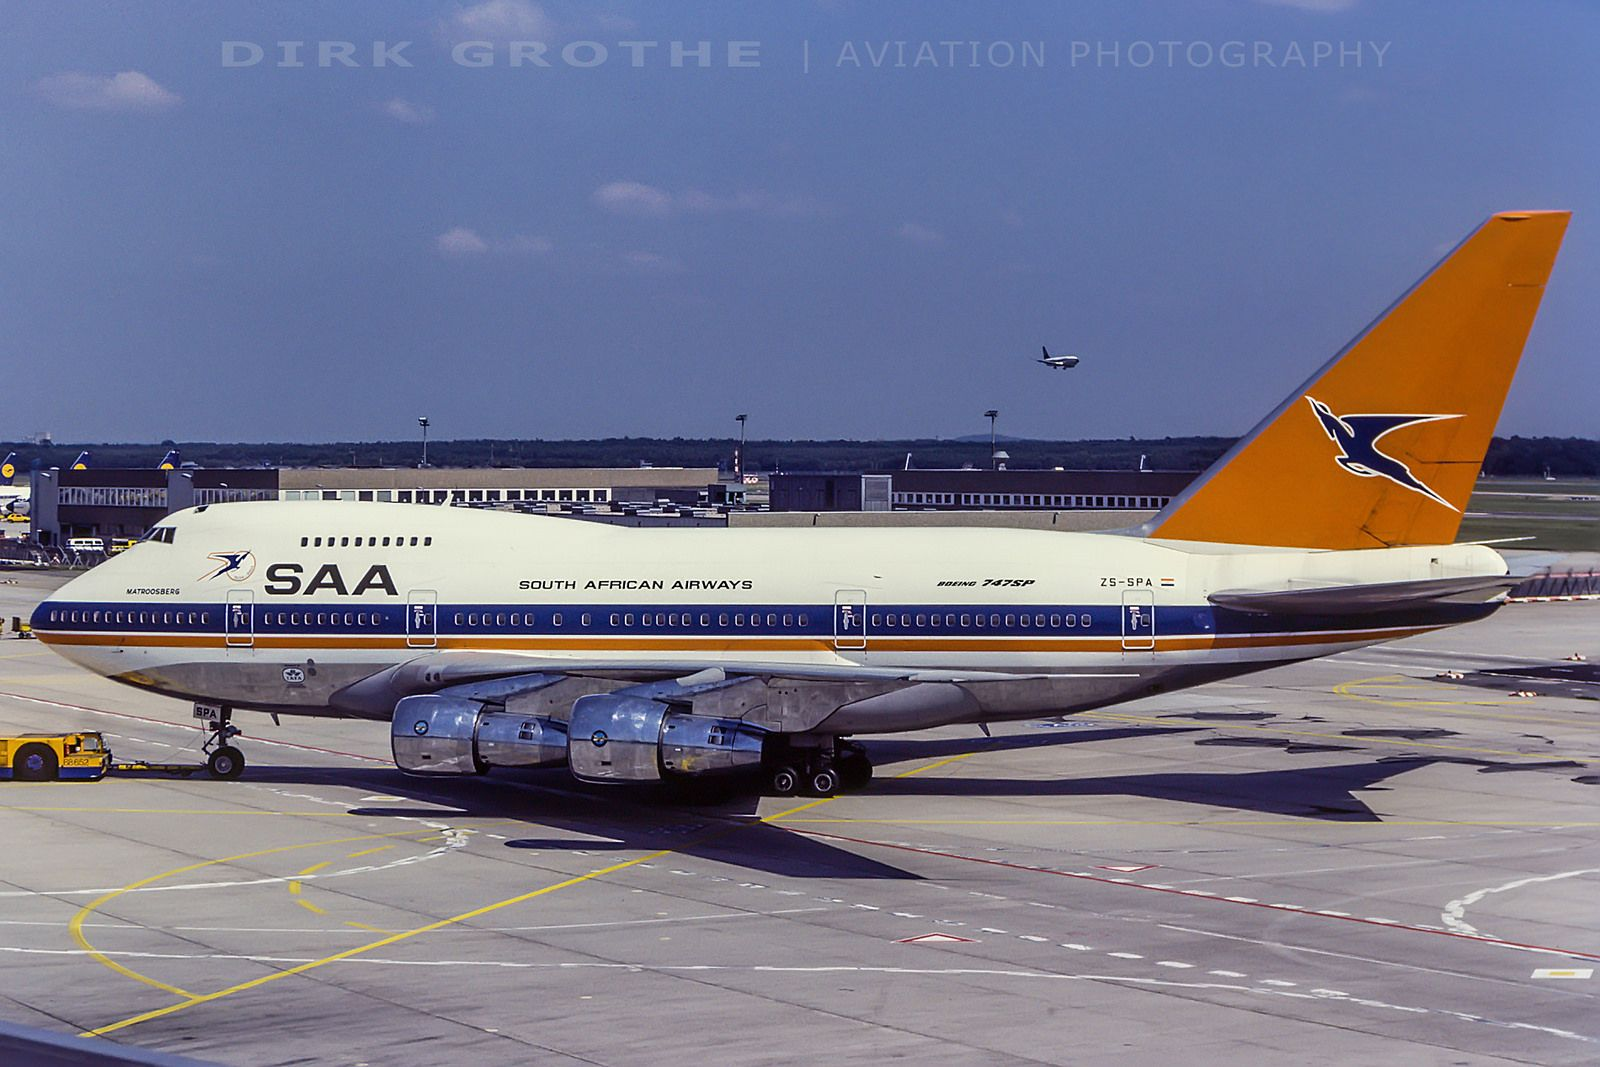 Saa B747sp Zs Spa 19840701 Fra Boeing Aircraft South African Airways Passenger Aircraft